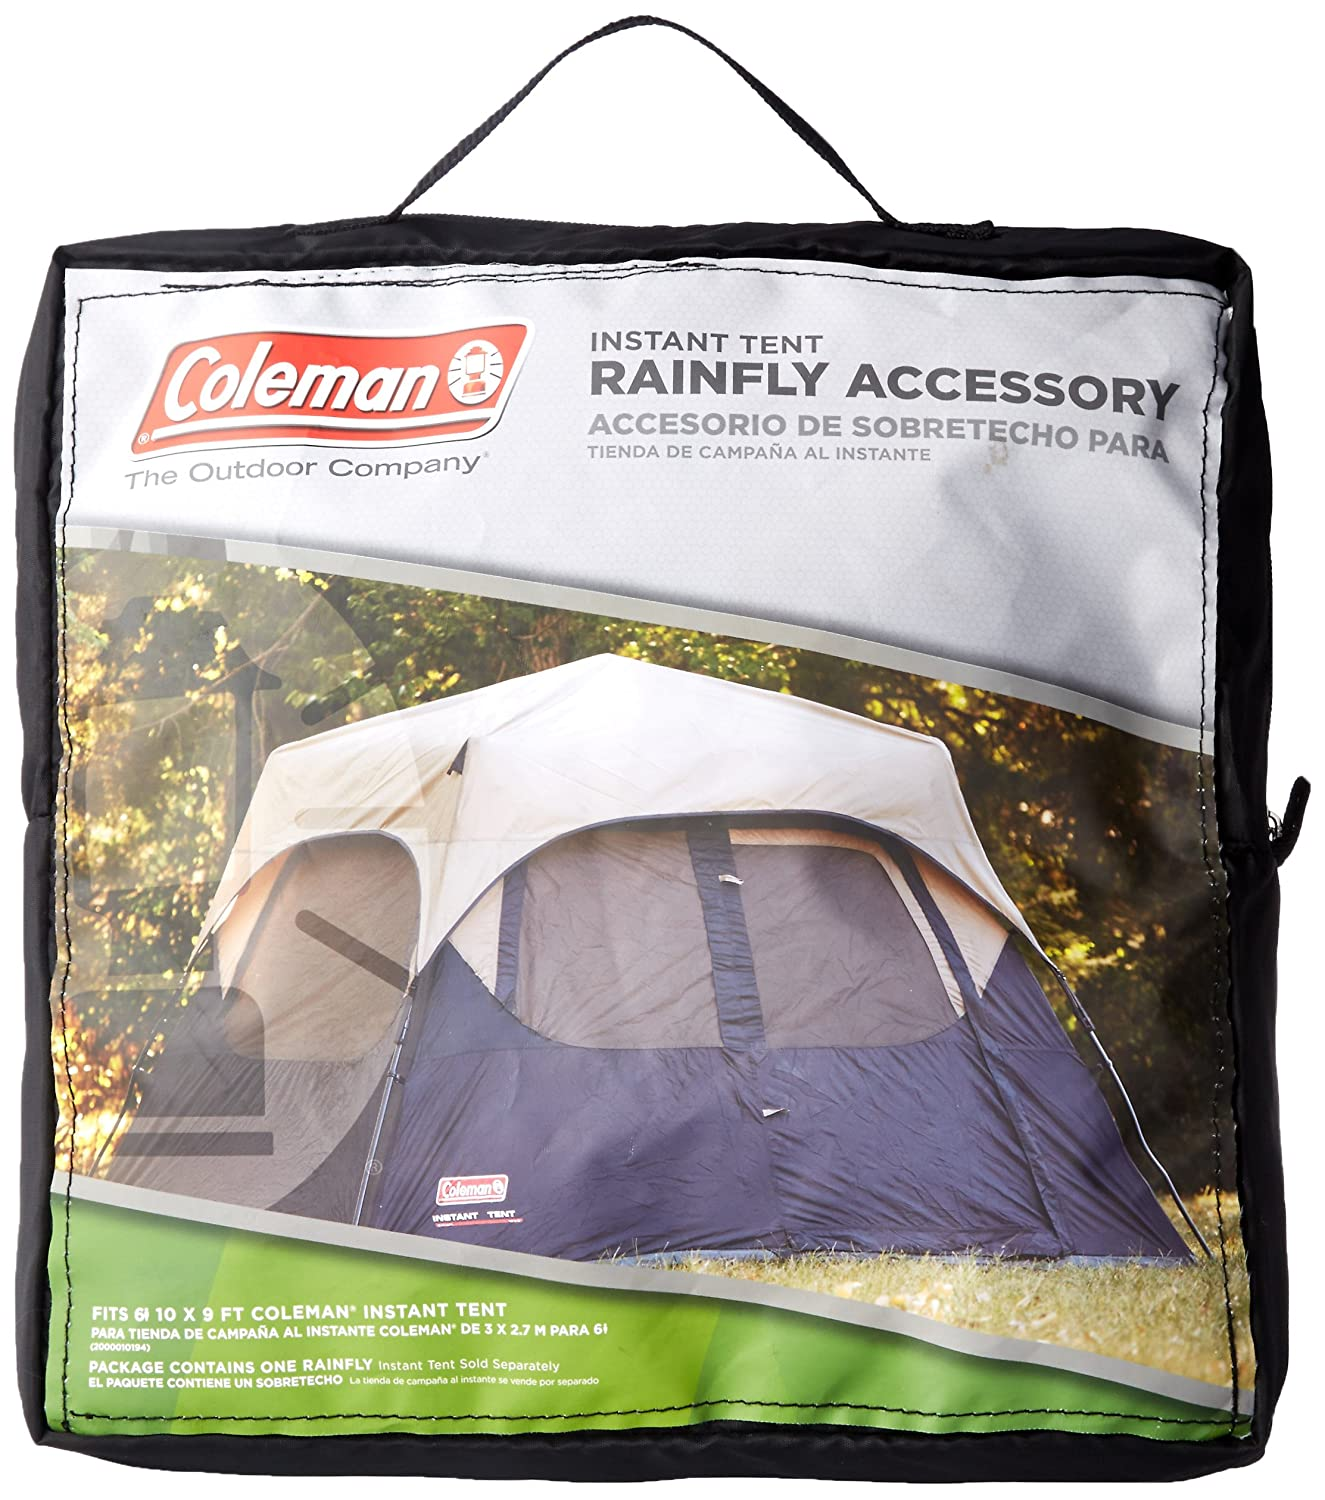 Amazon.com  Coleman 6-Person Instant Tent Rainfly Accessory  Tents For C&ing  Sports u0026 Outdoors  sc 1 st  Amazon.com & Amazon.com : Coleman 6-Person Instant Tent Rainfly Accessory ...